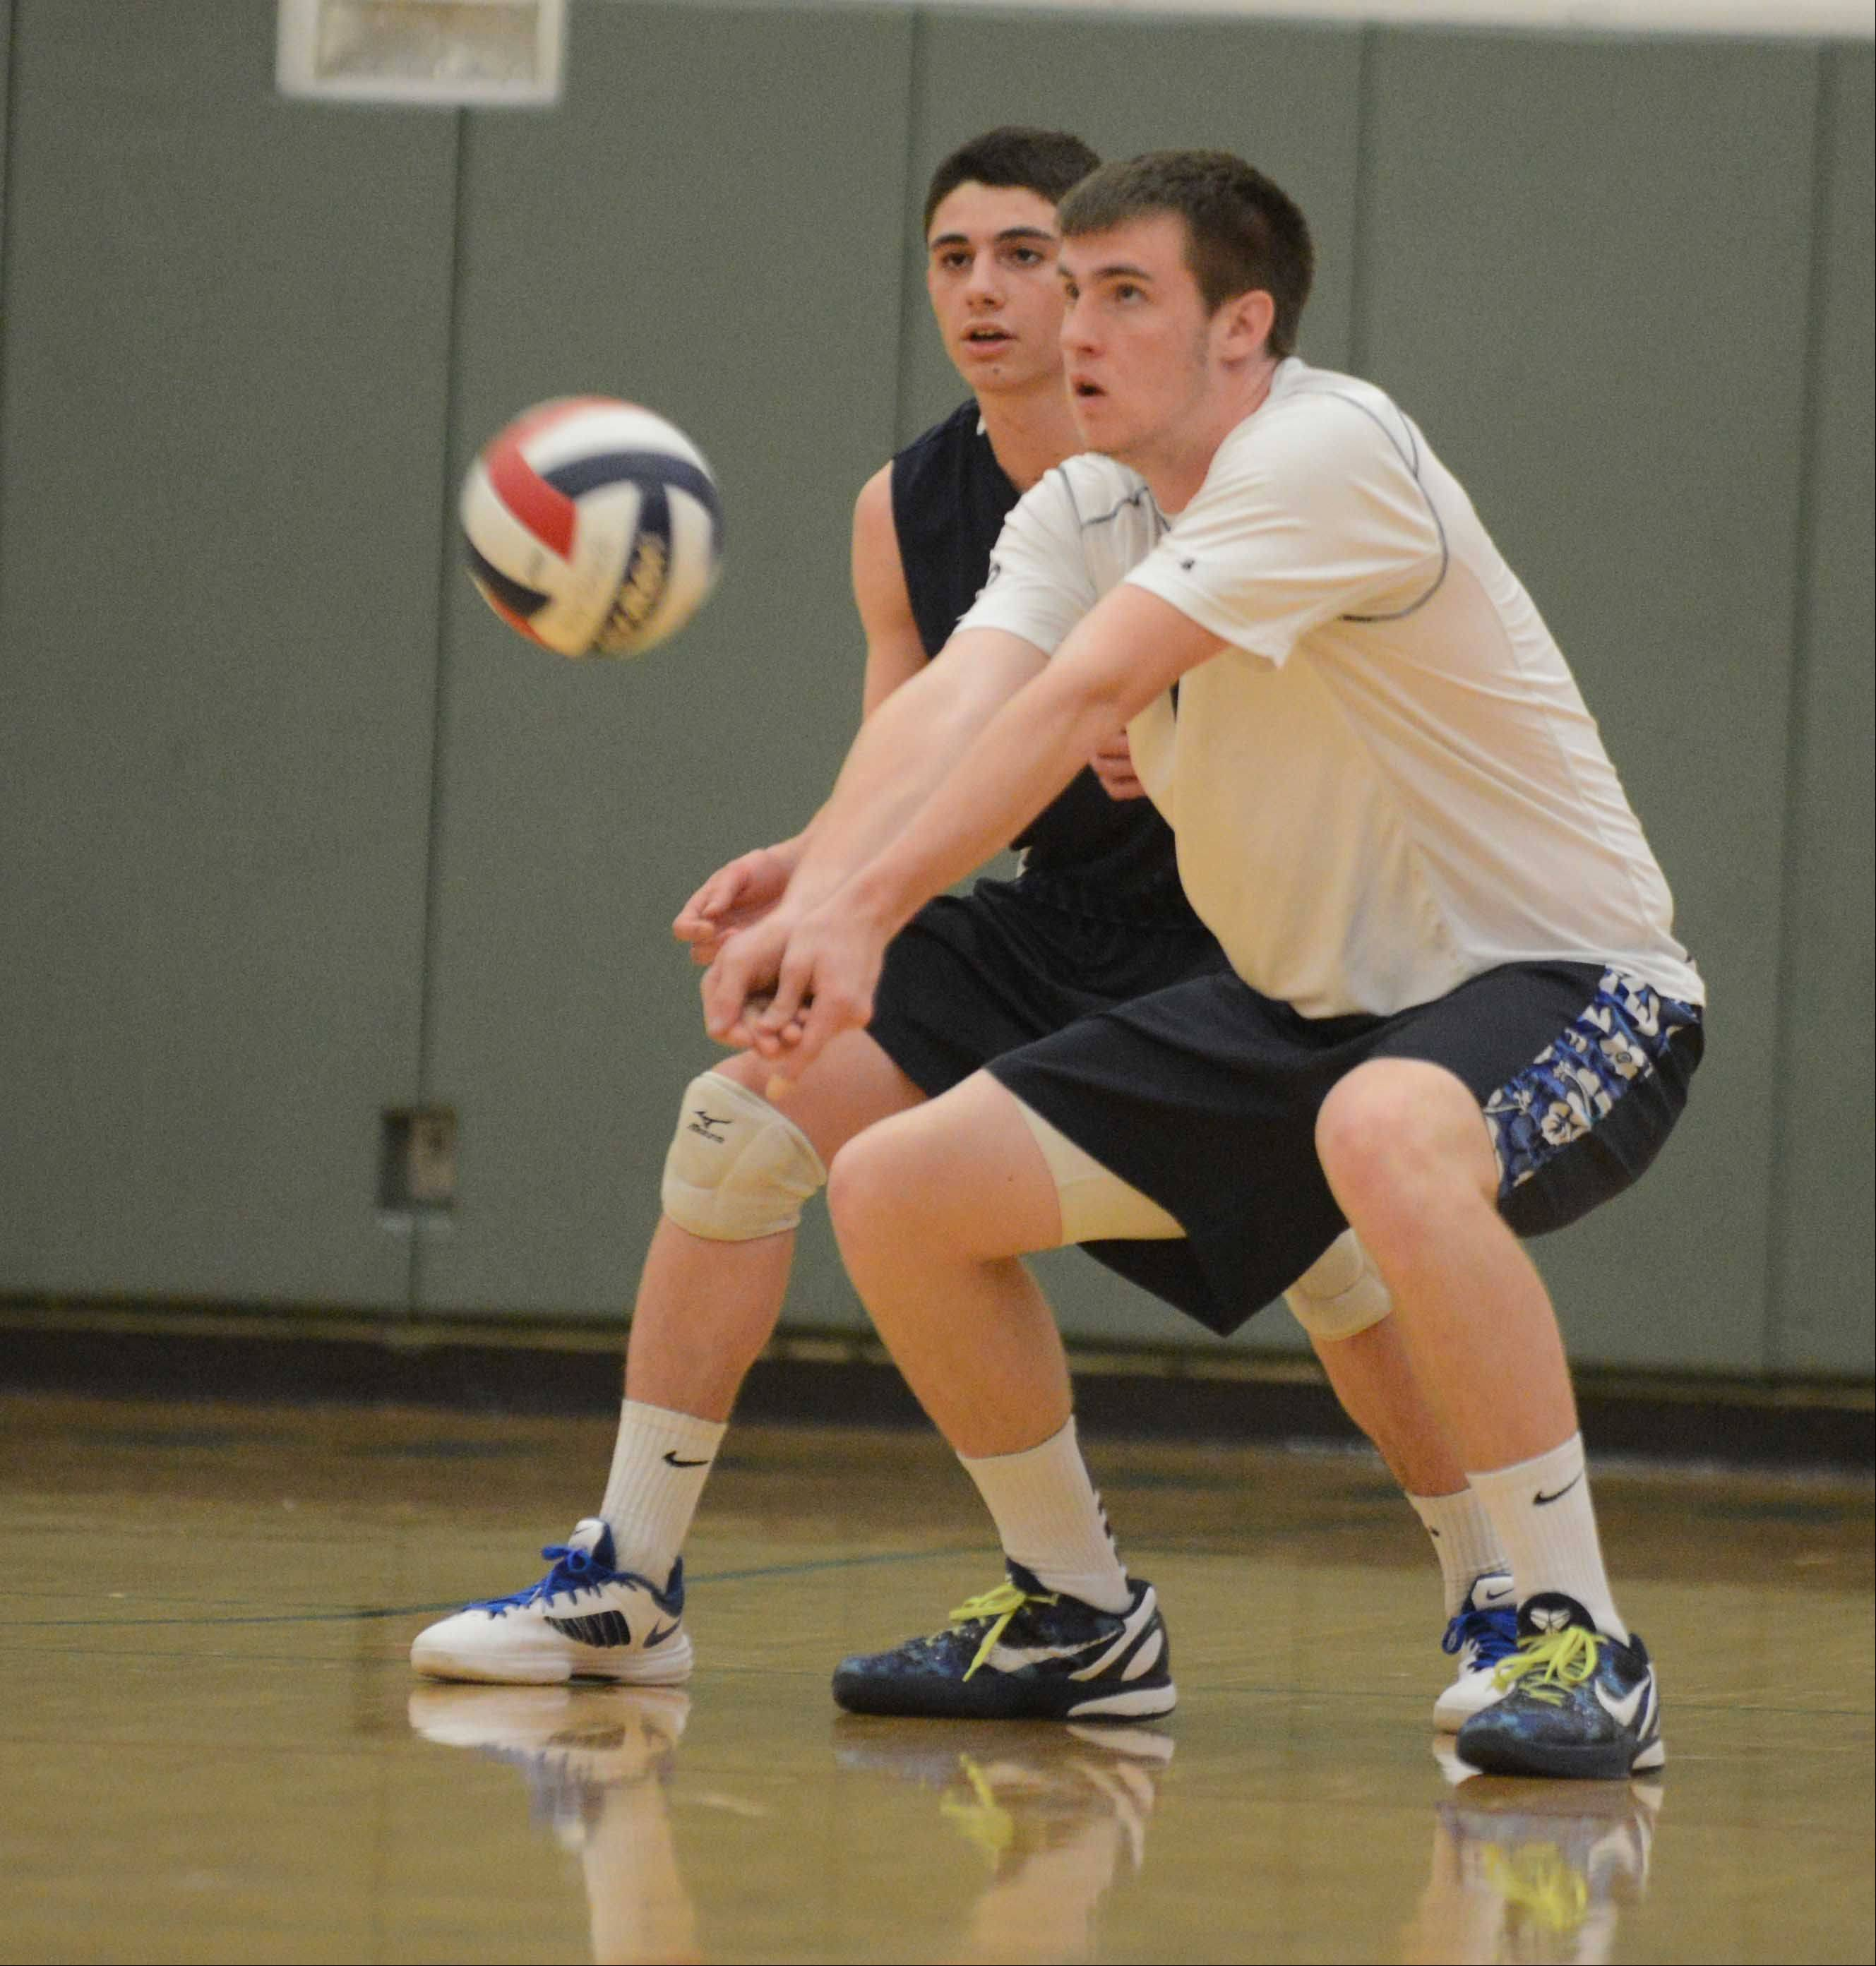 Dillon Hock of Lake Park bumps the ball during the Lake Park at Waubonsie Valley boys volleyball gameTuesday.